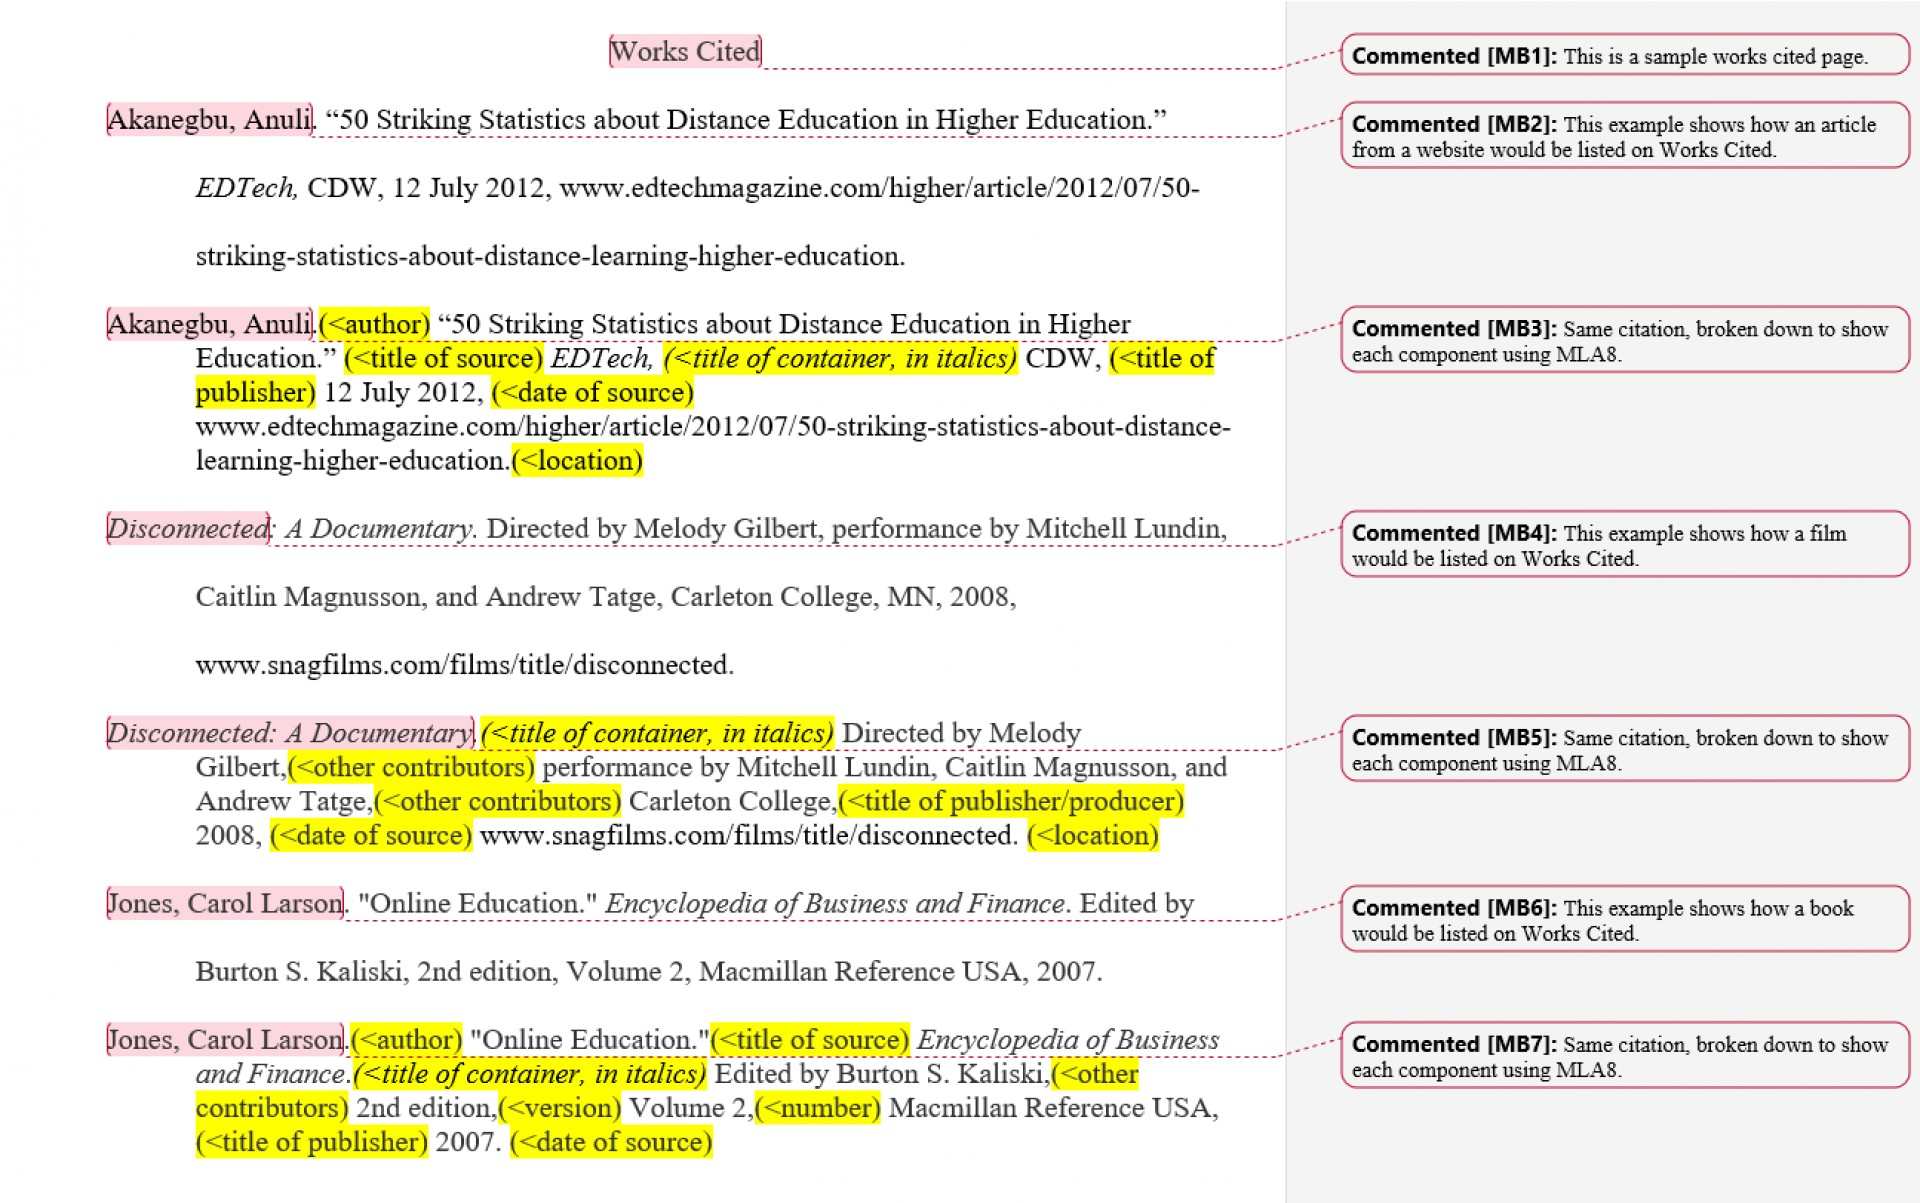 006 Do Works Cited Page Research Paper Example Unique Examples Mla Format 1920